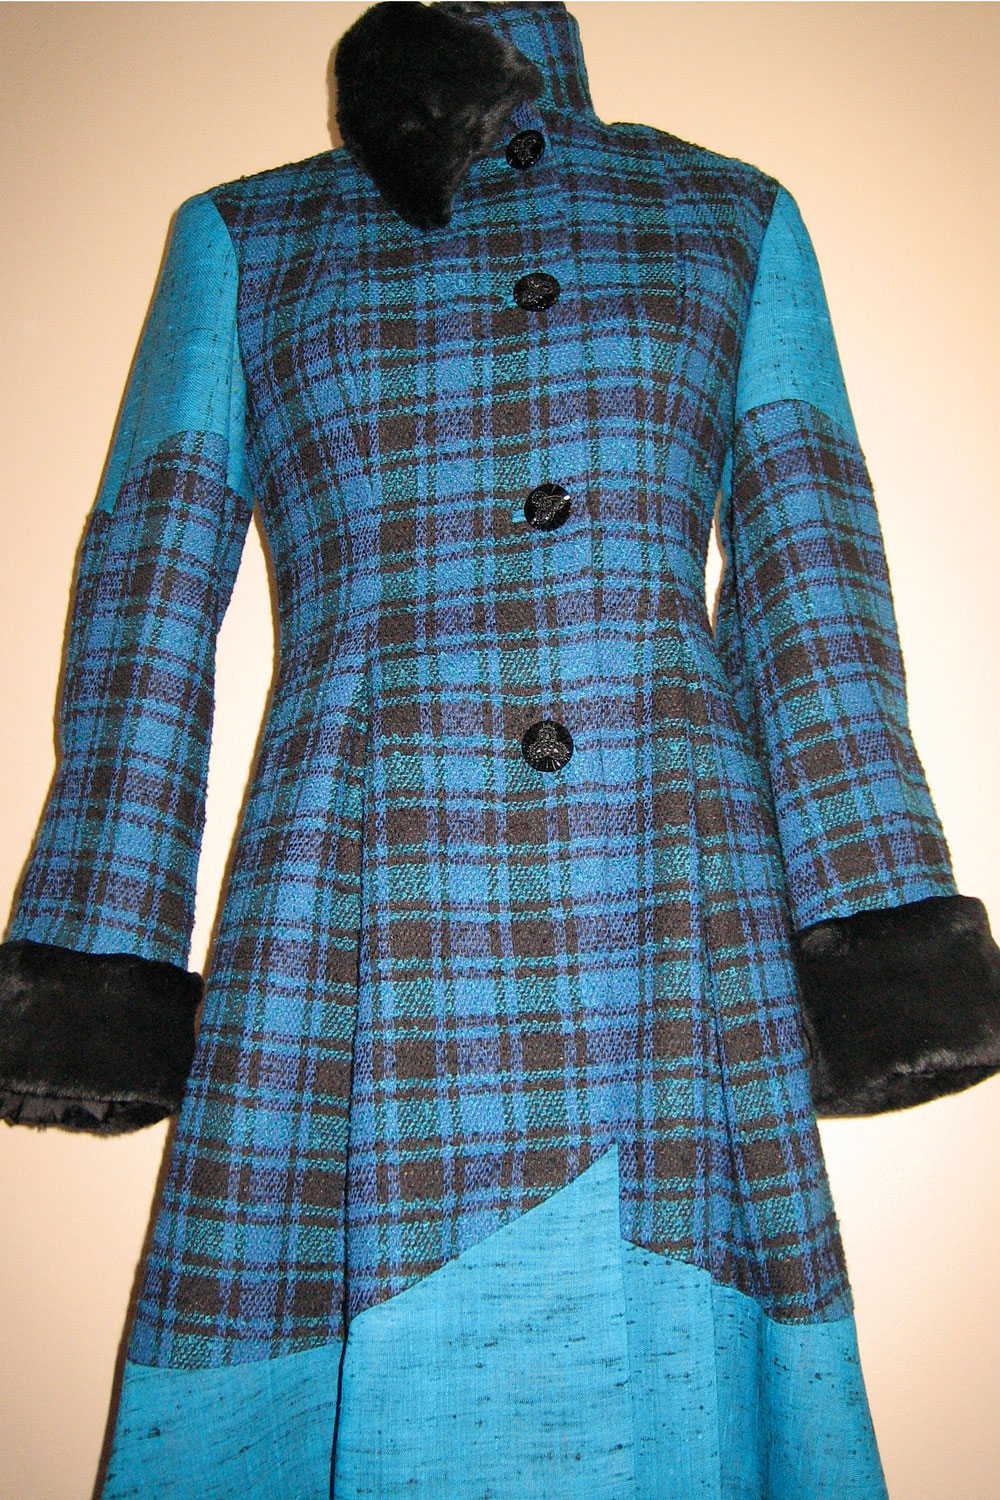 This Jade and Black Winter Coat was handmade using two very beautiful vintage fabrics, along with a faux fur trim in black.